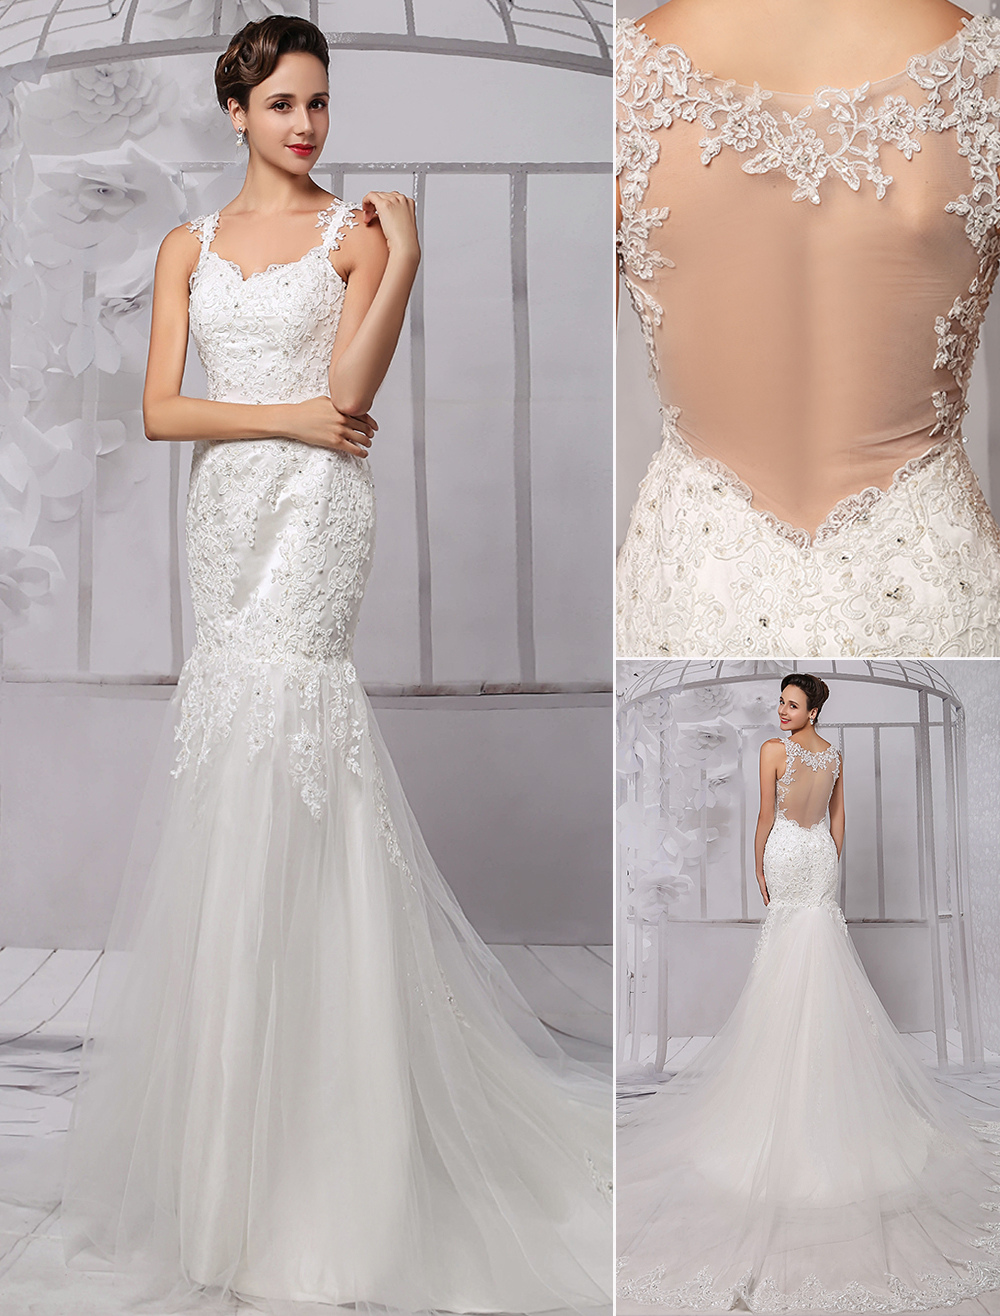 Luxury Lace Sheer Back Tulle Mermaid Spaghetti Straps Wedding Dresses With Detachable Train Milanoo